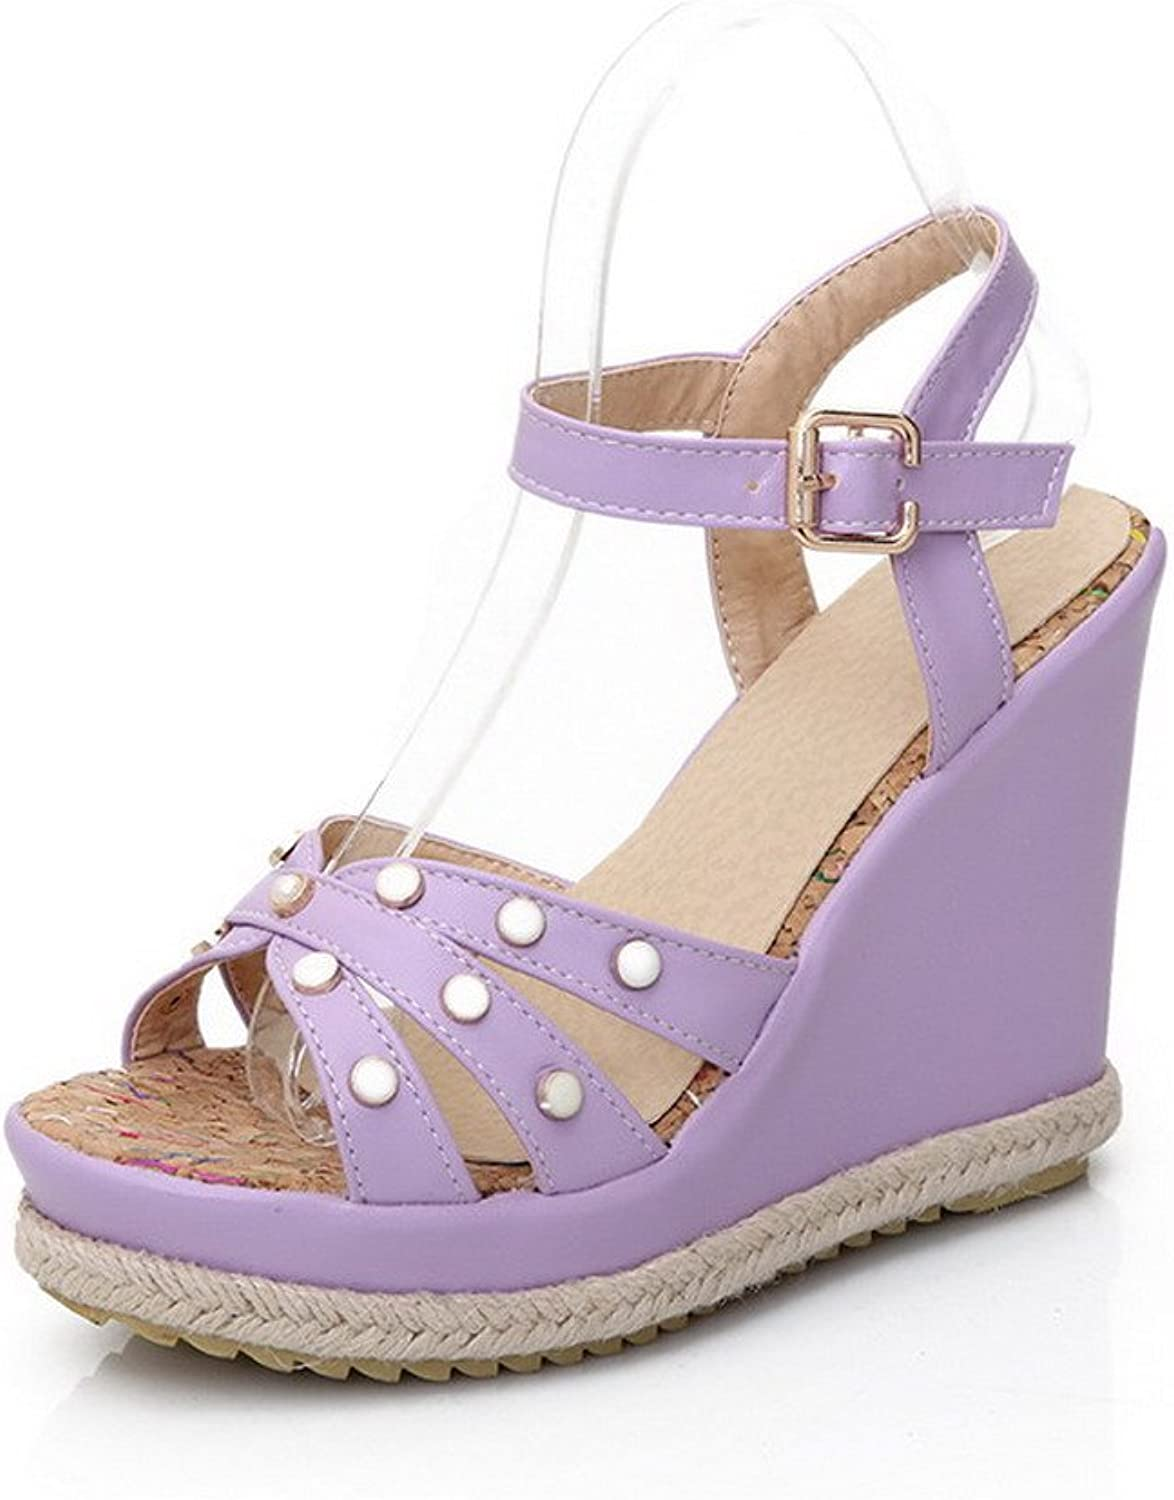 AmoonyFashion Women's Soft Leather Buckle Open Toe High Heels Solid Sandals